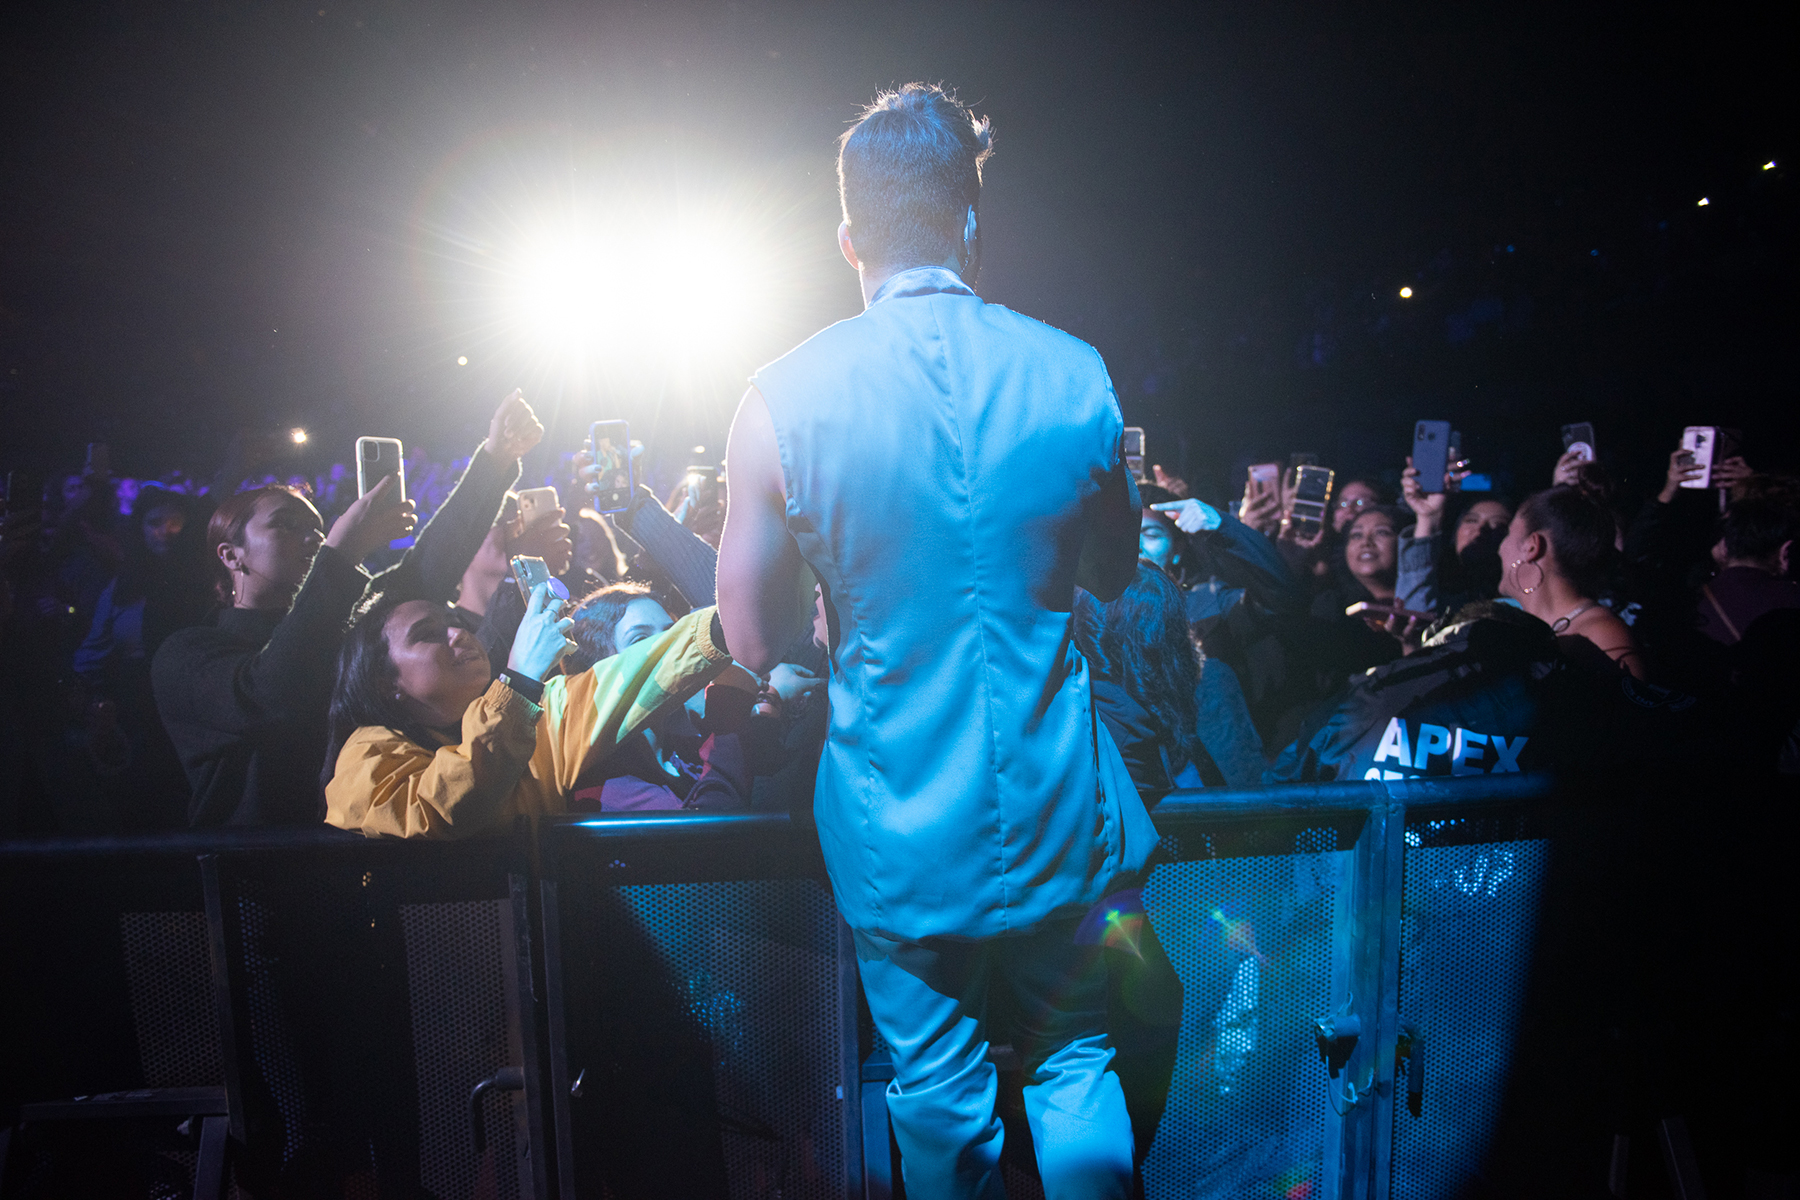 Prince Royce performs at the Forum in Los Angeles on March 12th, 2020.